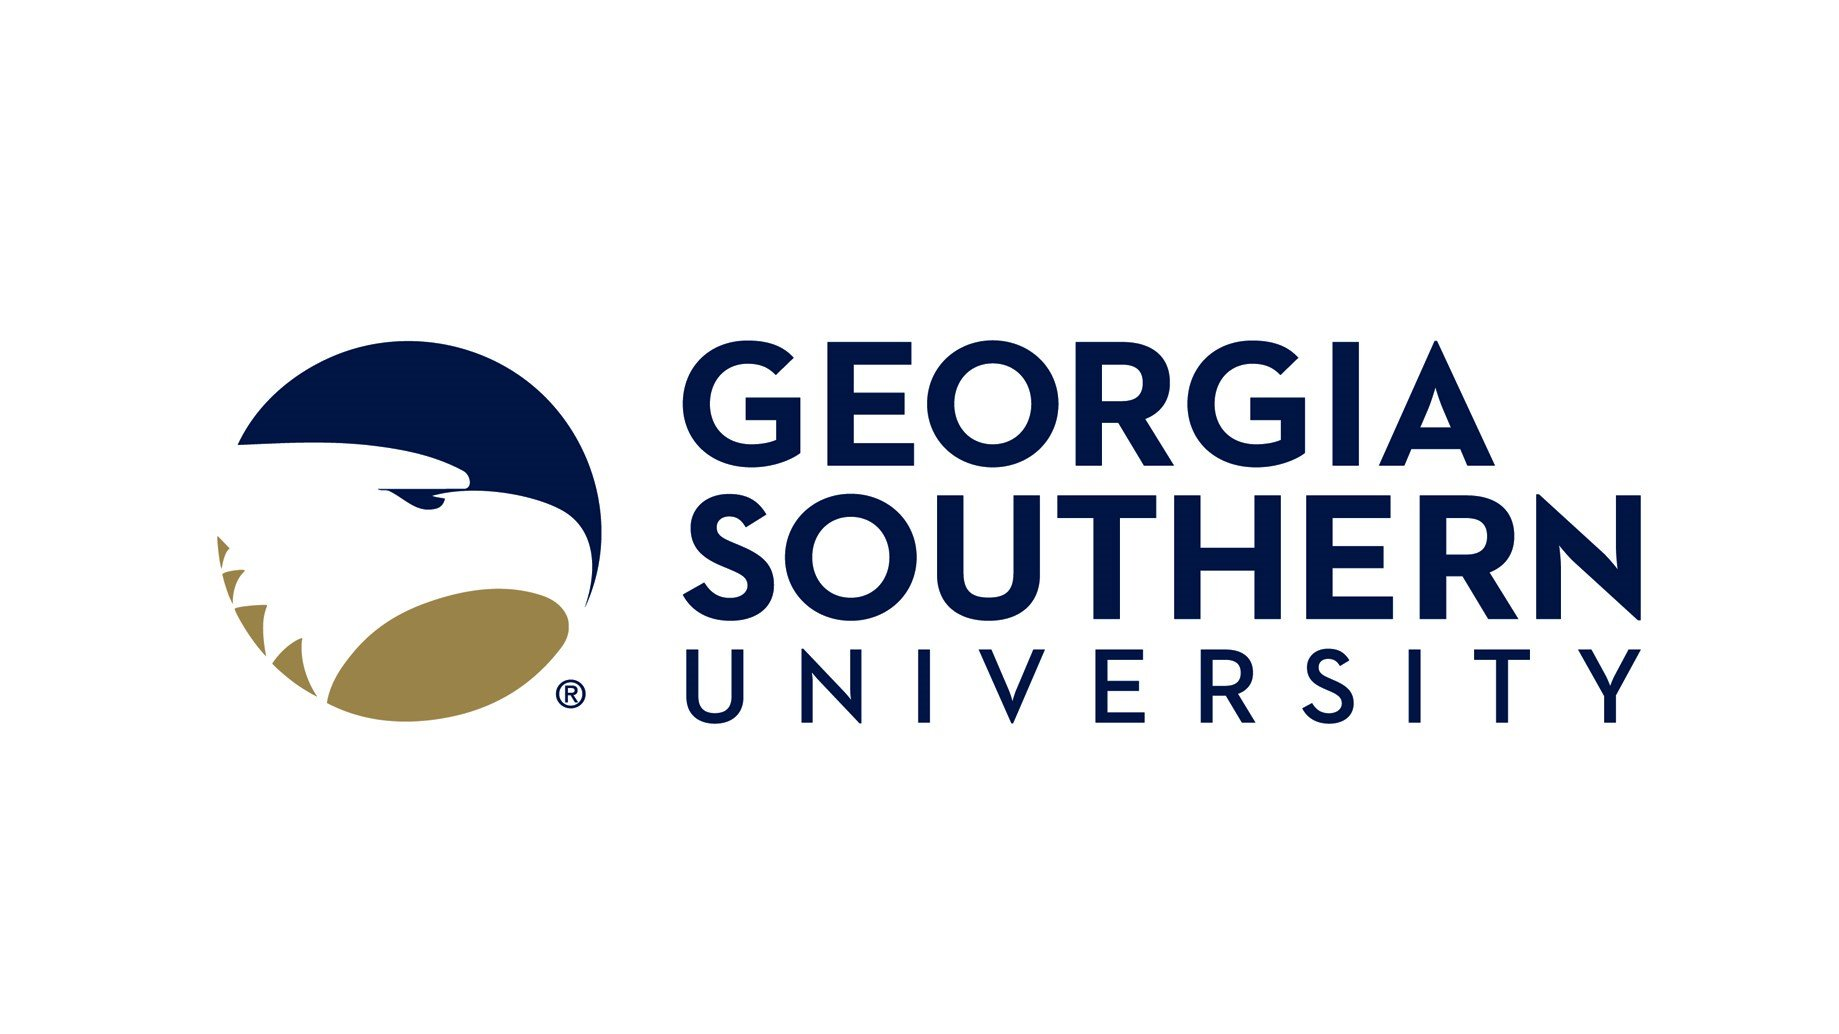 Georgia Southern University Logo. (SOURCE: University)